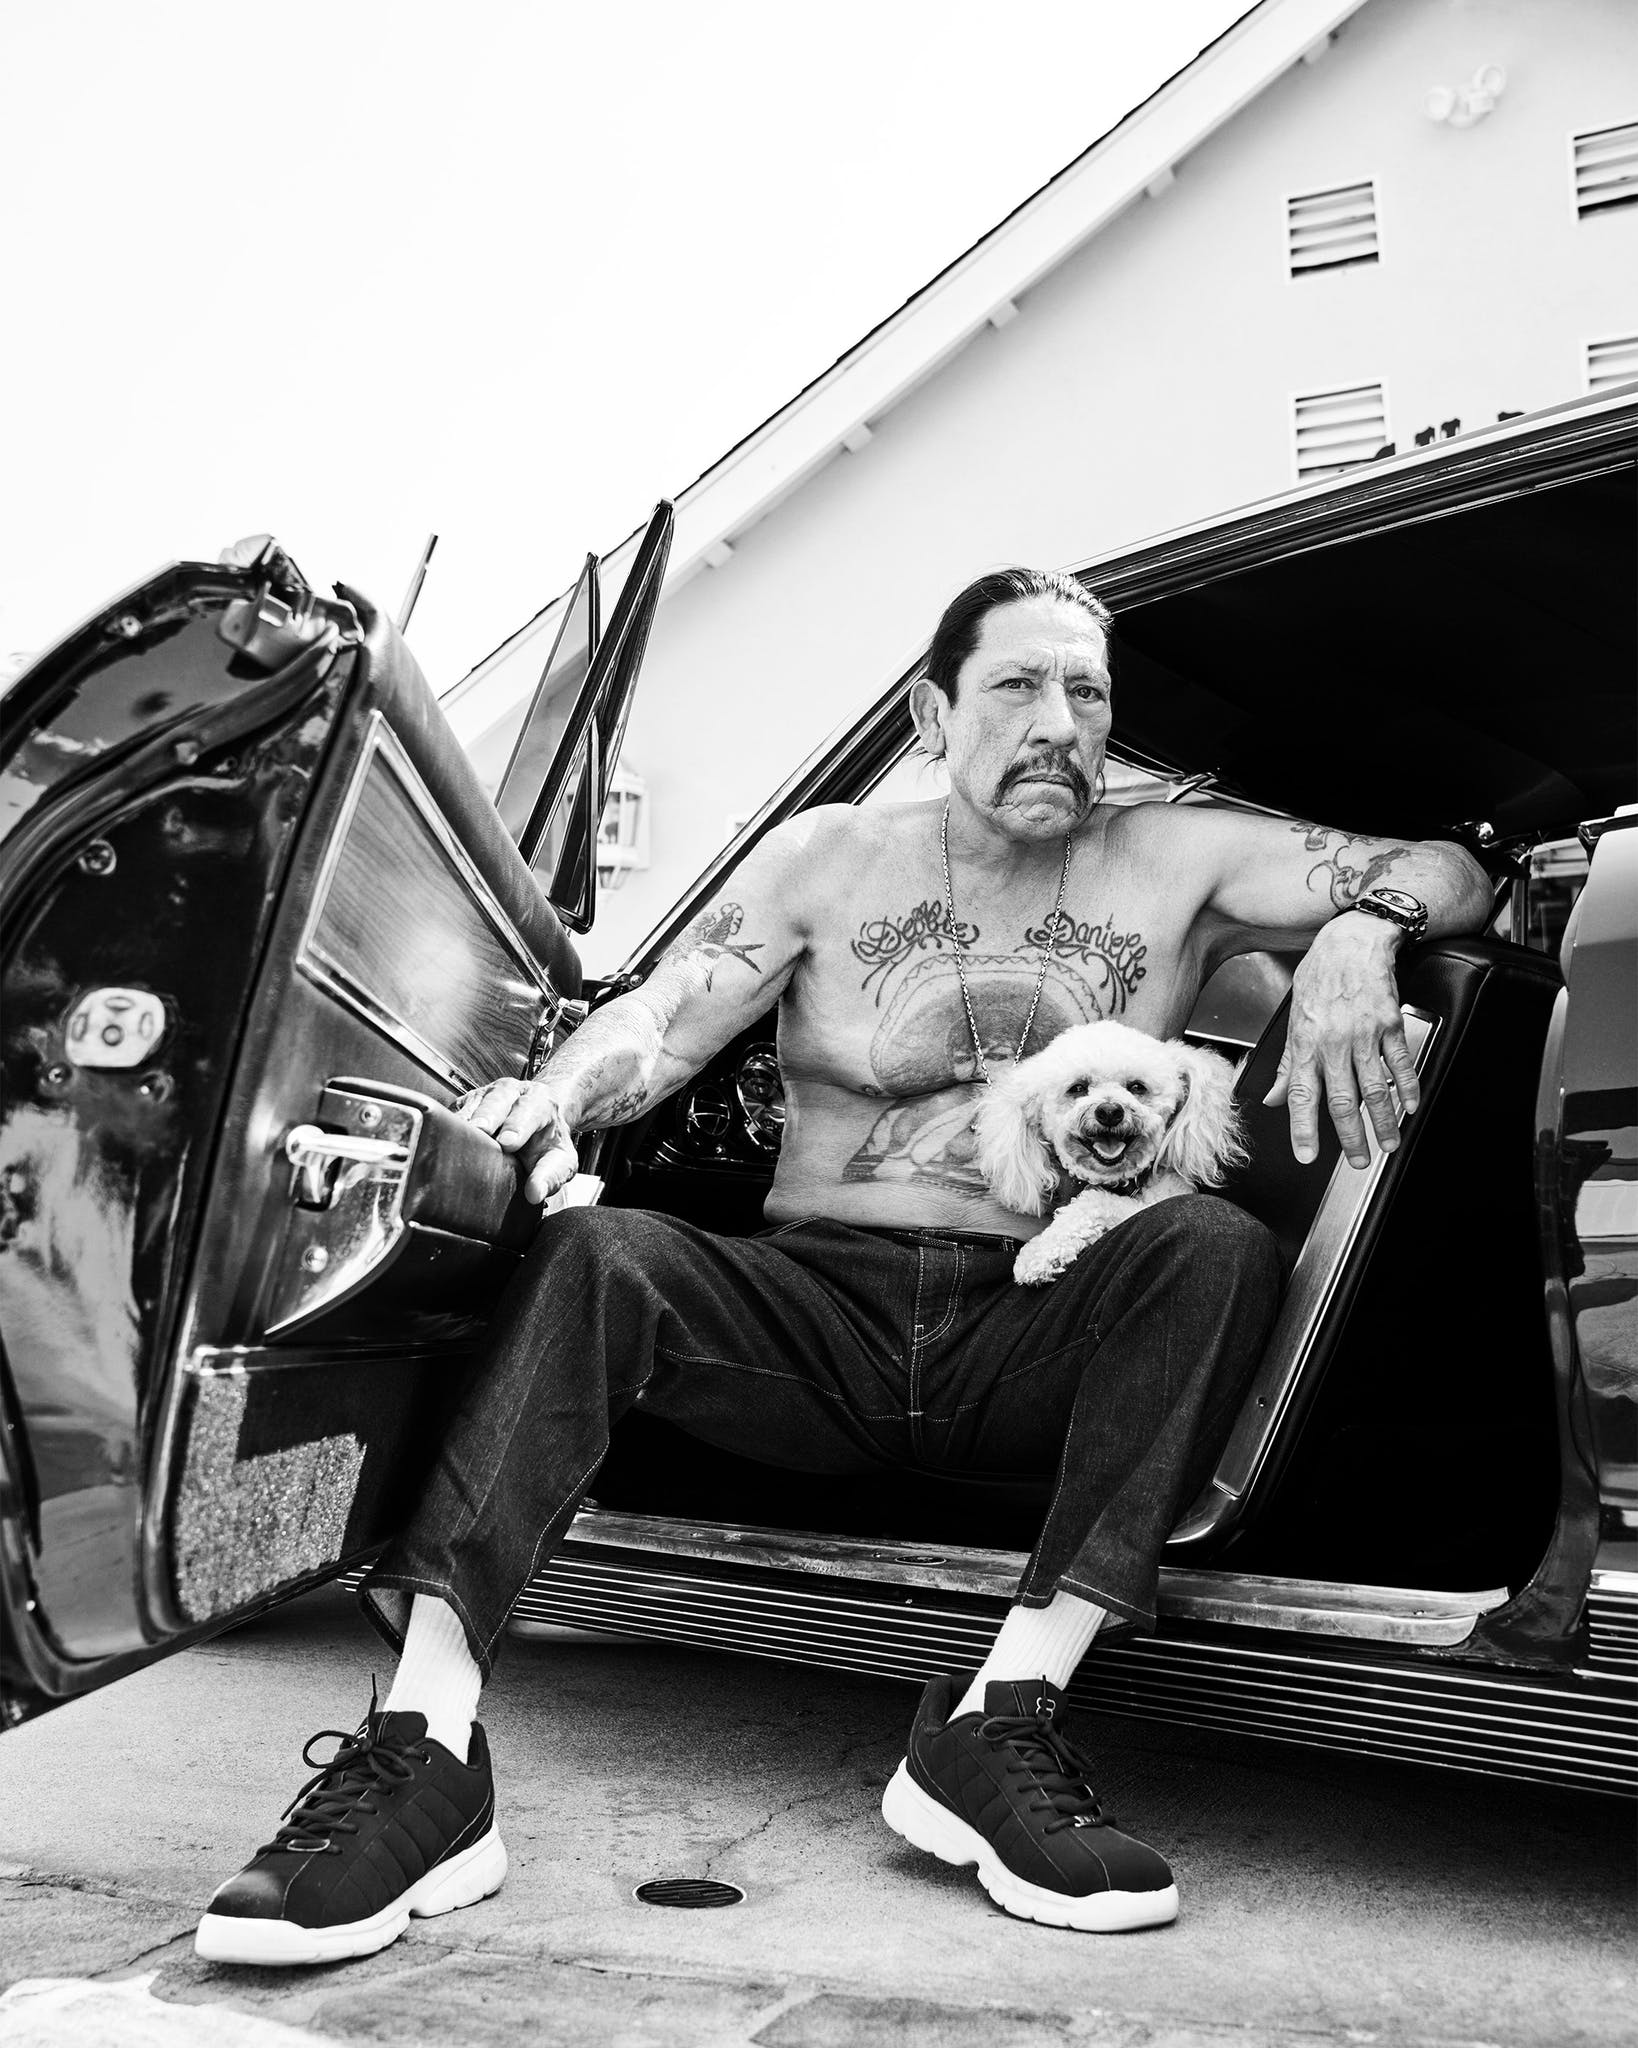 Danny Trejo and one of his dogs, Zelda, outside his home in Mission Hills, California.